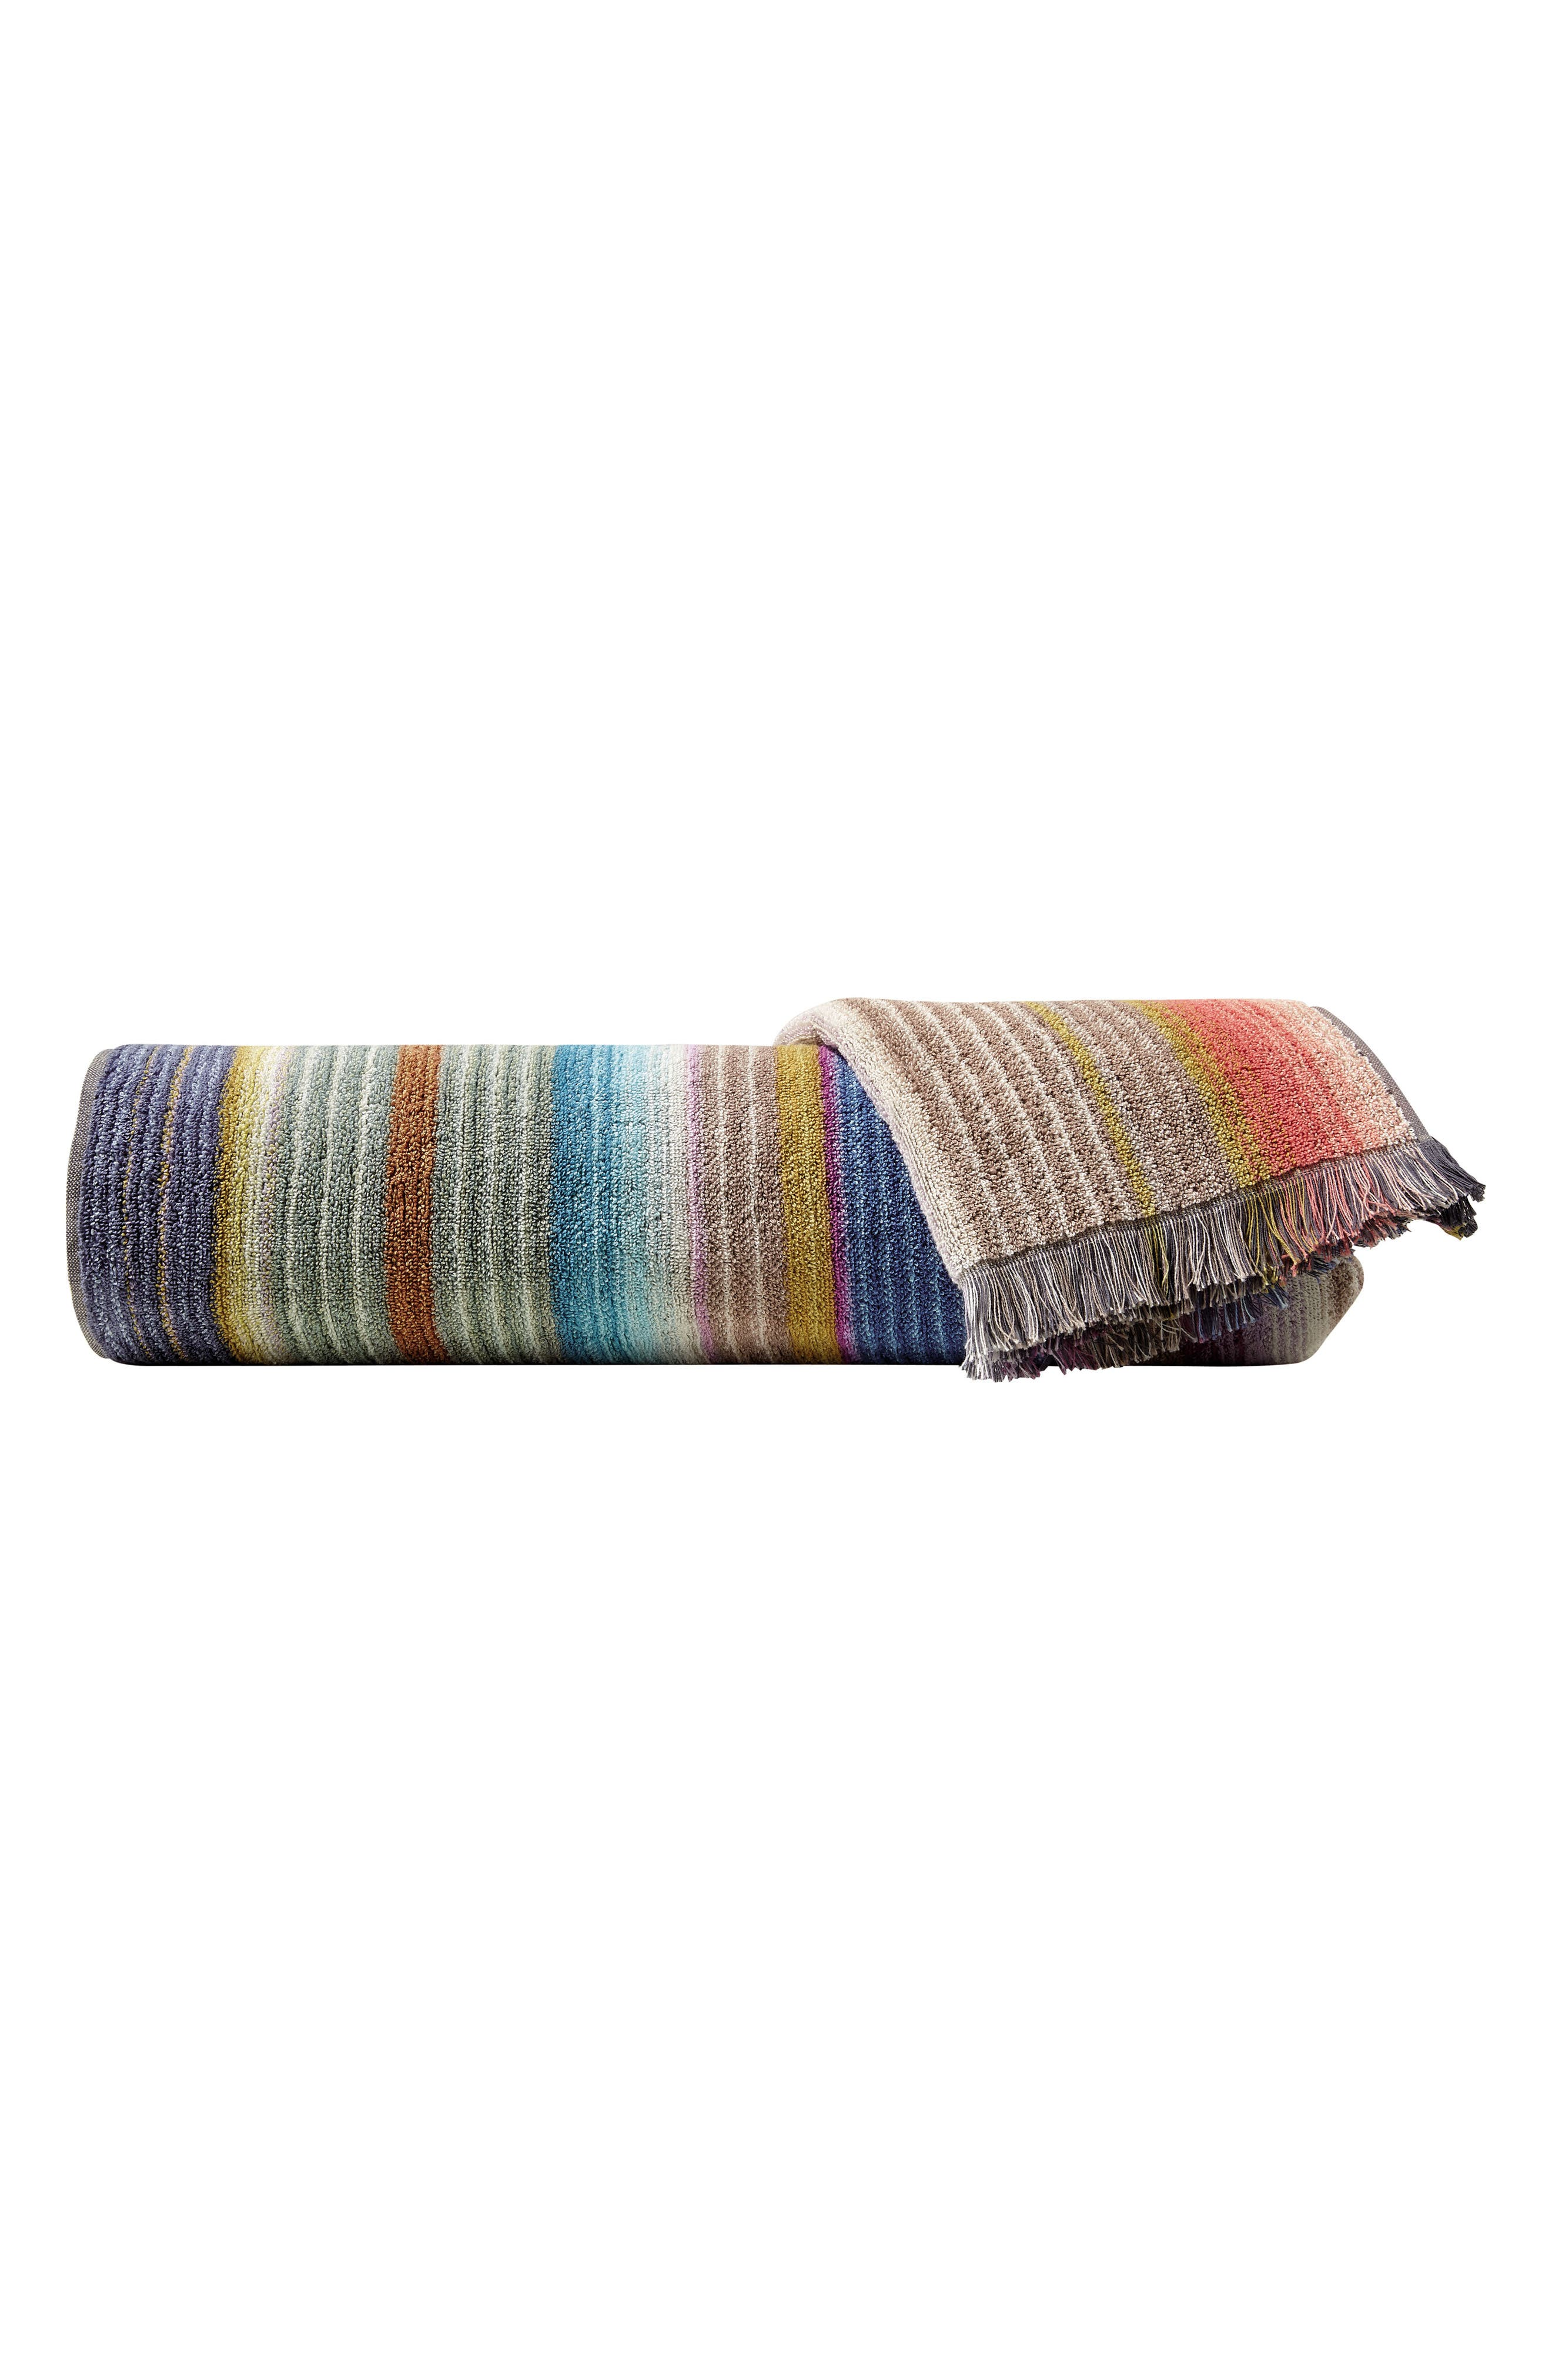 Viviette Bath Towel,                         Main,                         color, Taupe Multi